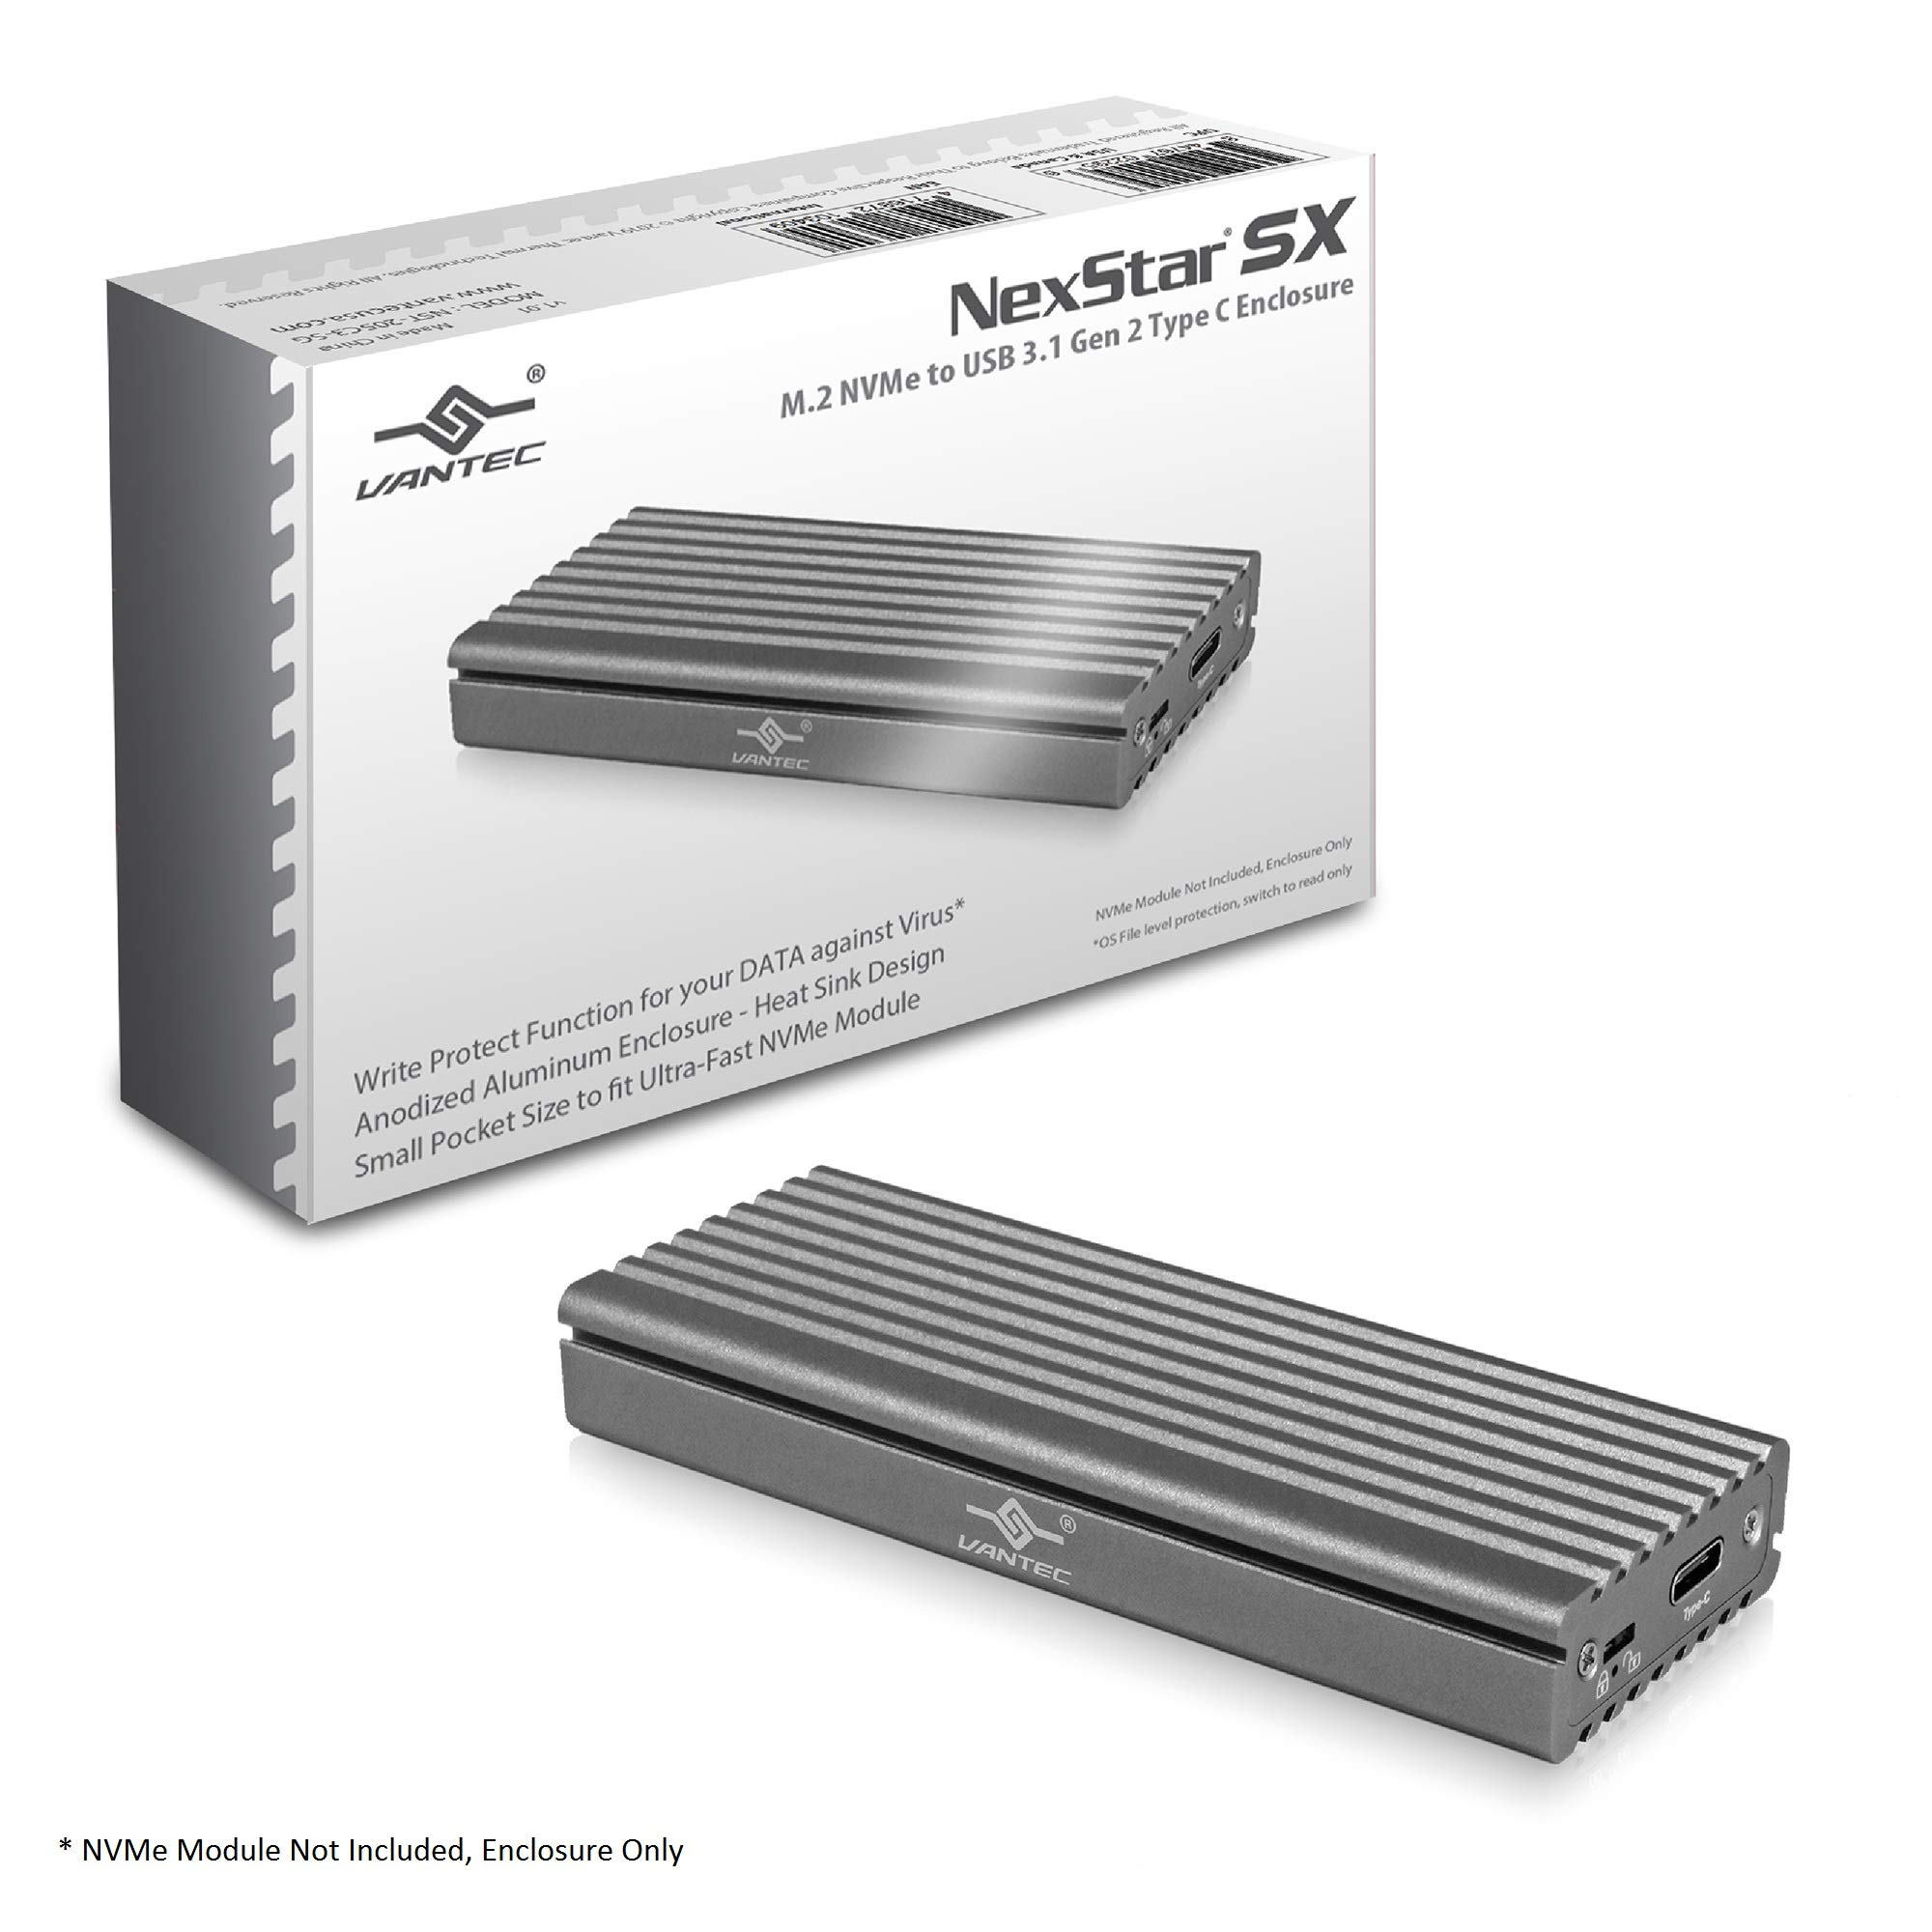 Vantec M.2 Nvme SSD to USB 3.1 Gen 2 Type C Enclosure with C to C Cable, Space Gray Color, ID5 (NST-205C3-SG) by Vantec